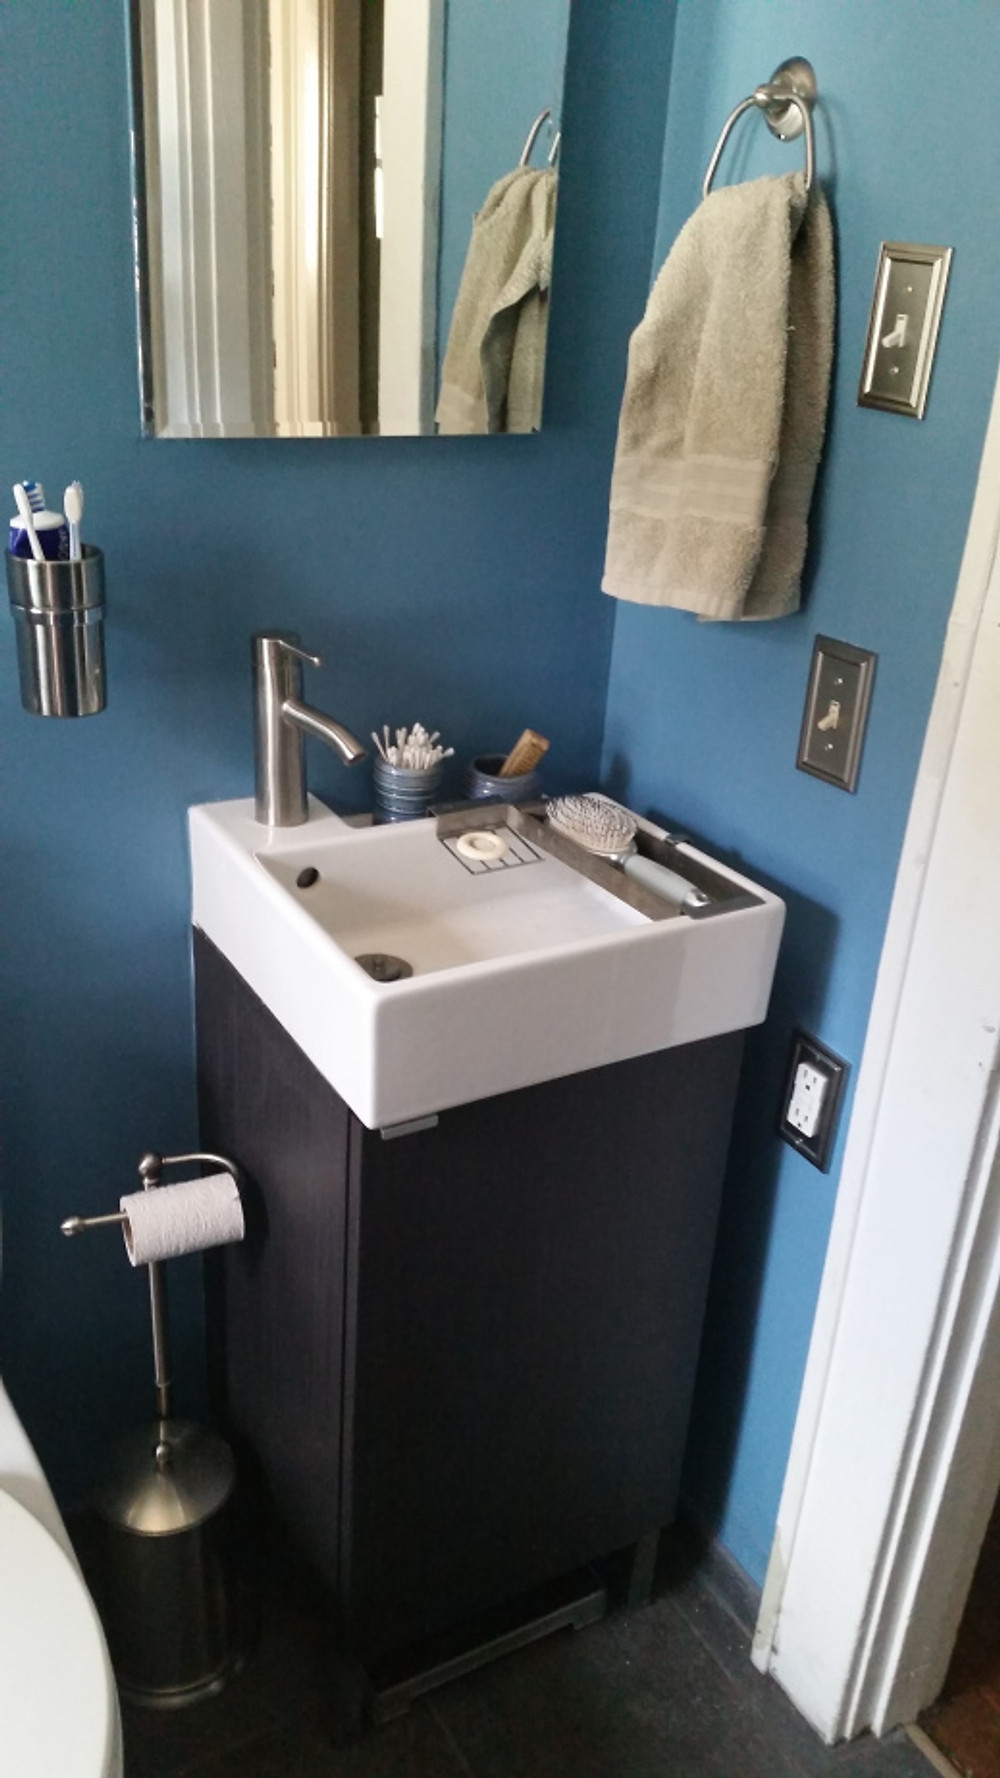 Our sink / medicine cabinet / etc. in more detail. I gotta say I was almost more excited about the toothbrush holder than anything LOL...